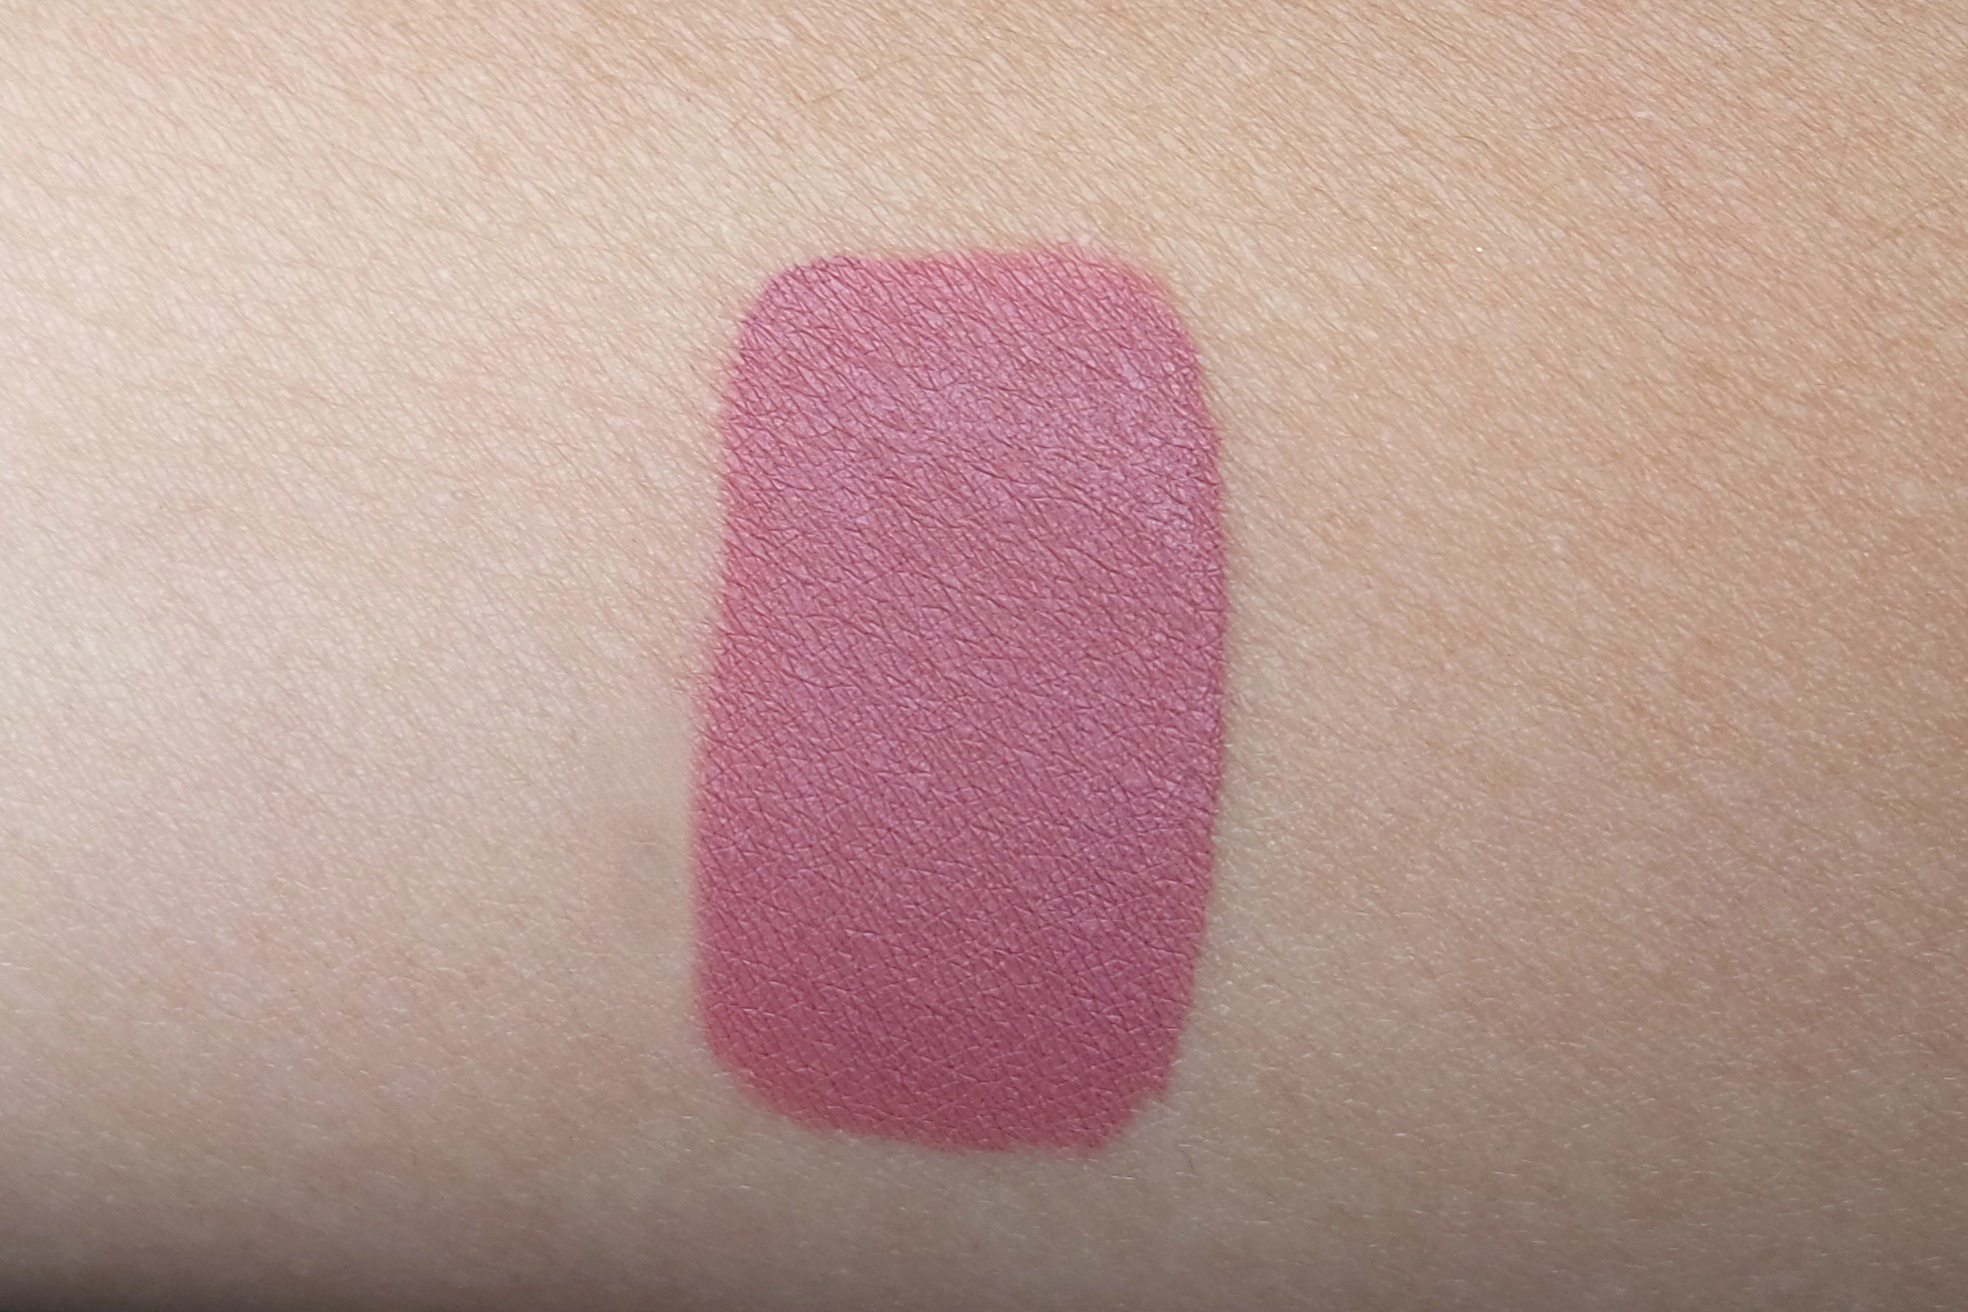 The Anastasia Liquid Lipstick In Dusty Rose Is Pigmented And Opaque It Has A Very Creamy Consistency Which Fully Dries About 5 Minutes